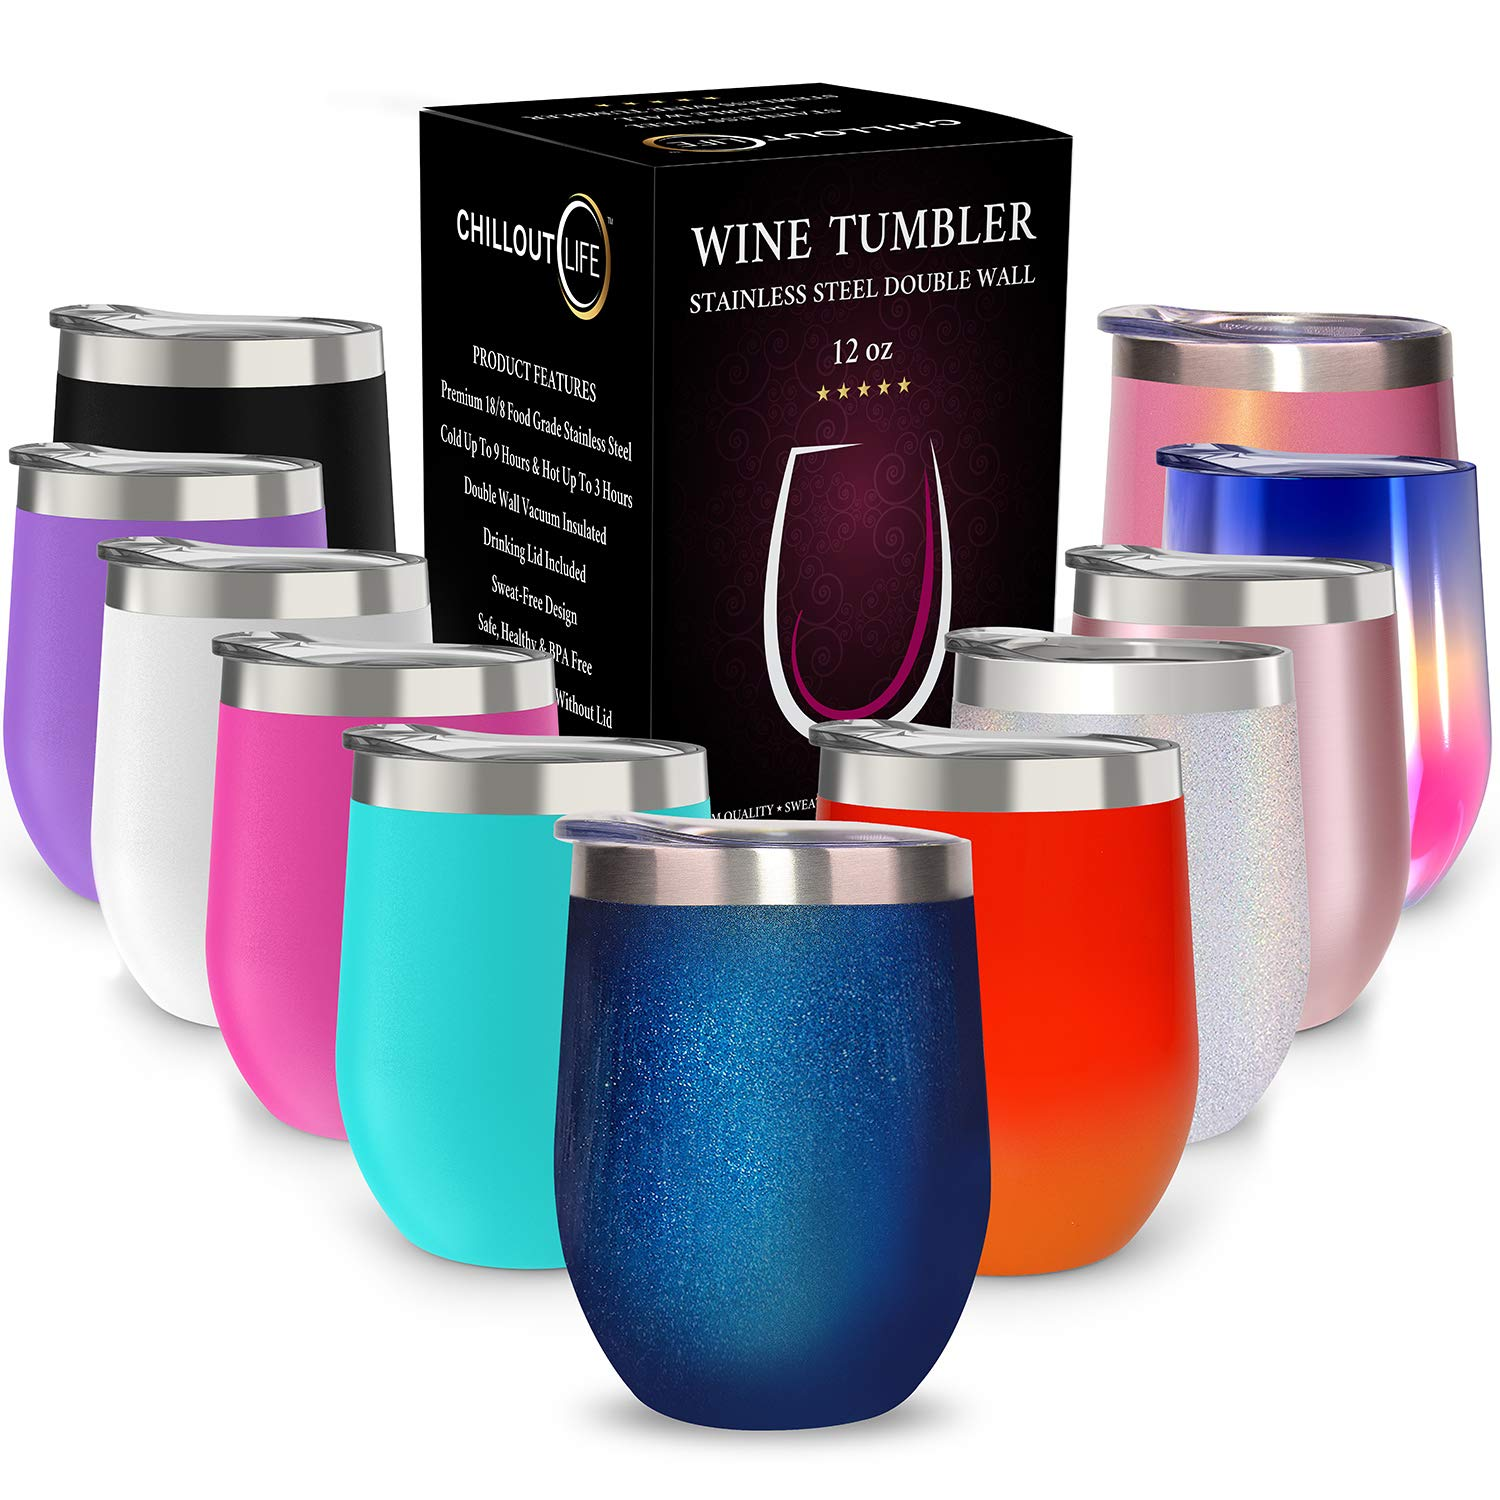 Stainless Steel Stemless Wine Glass Tumbler | Double Wall Vacuum Insulated Travel Tumbler Cup for Coffee, Wine, Cocktails, Ice Cream | Unbreakable, BPA Free, Powder Coated (Blue Sparkle, 12 oz)